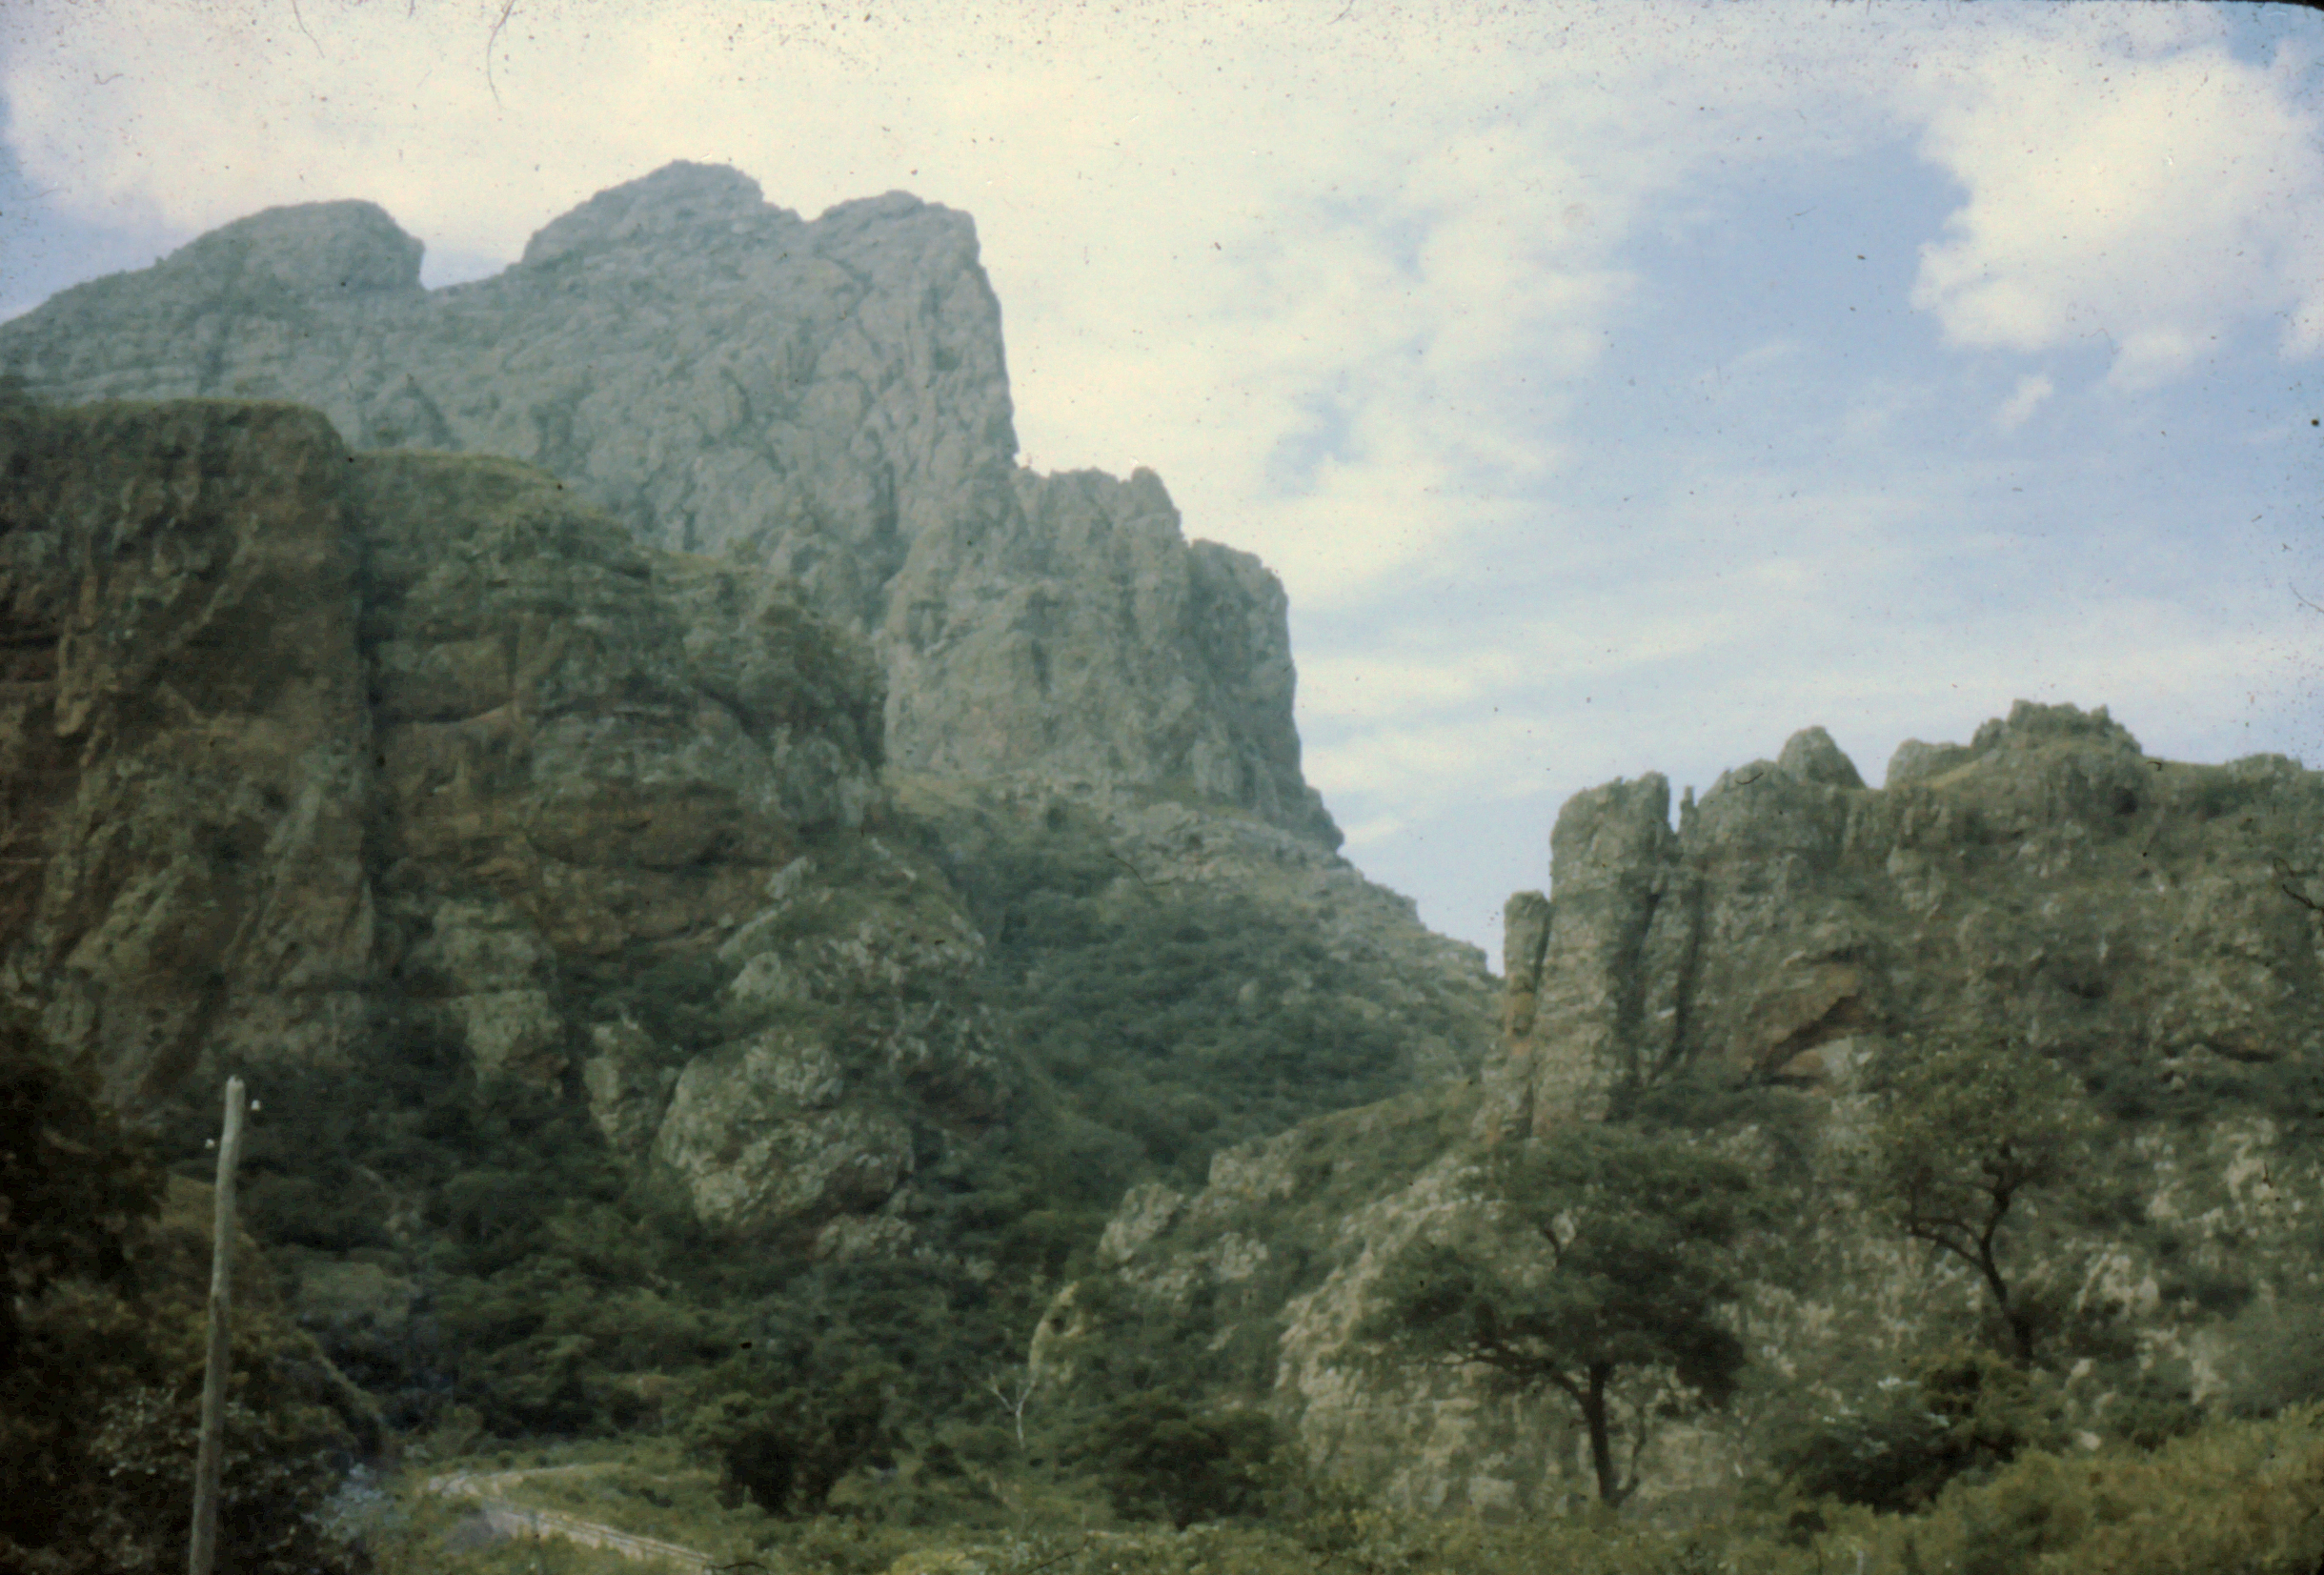 Ayoré land has many hills and low mountains.